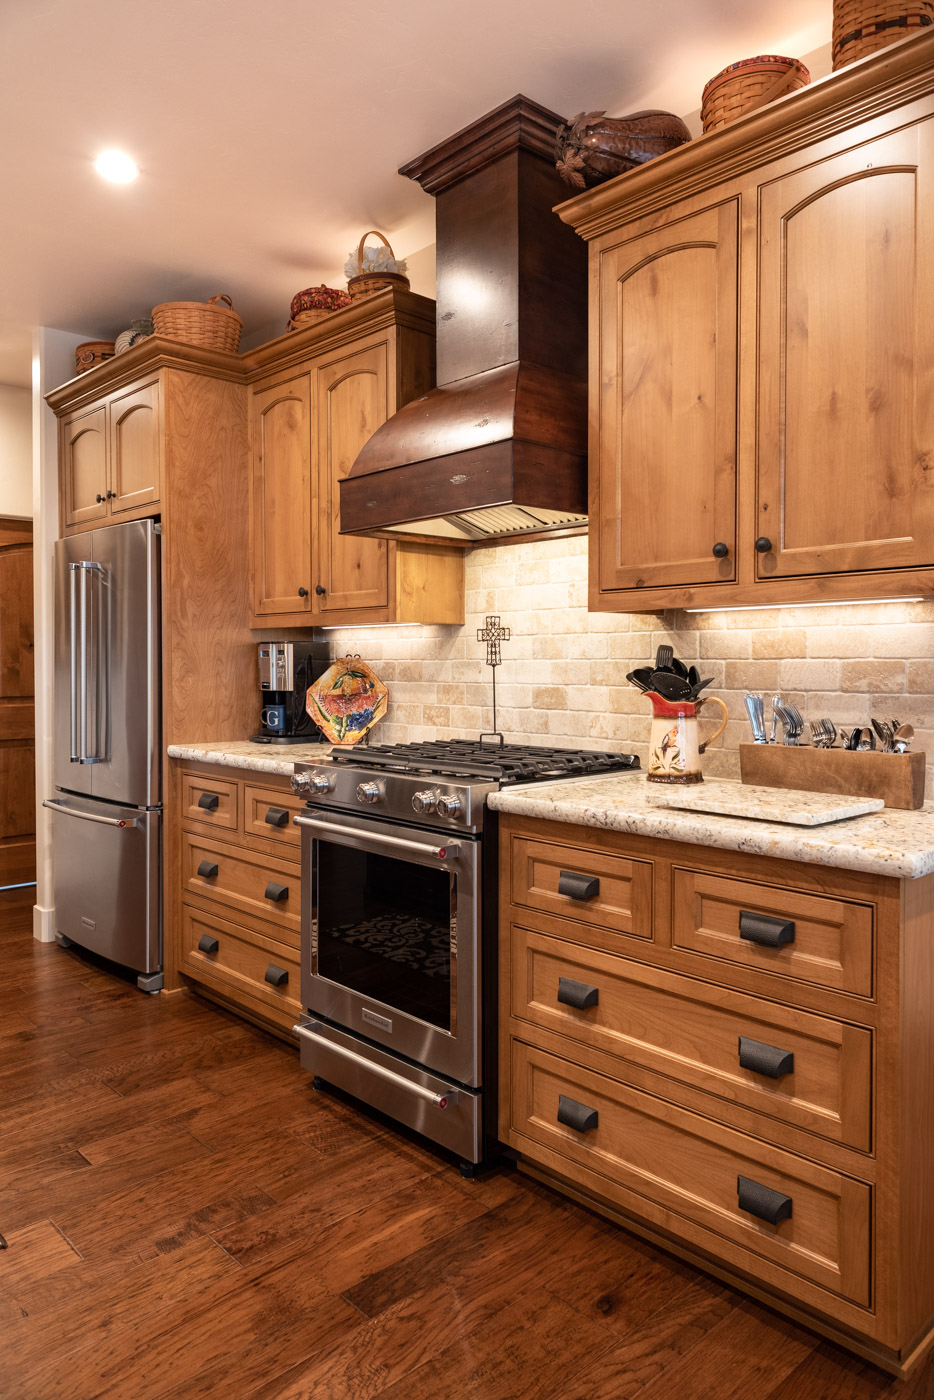 Tuscan Artisan custom stained Alder wood kitchen cabinets and range hood